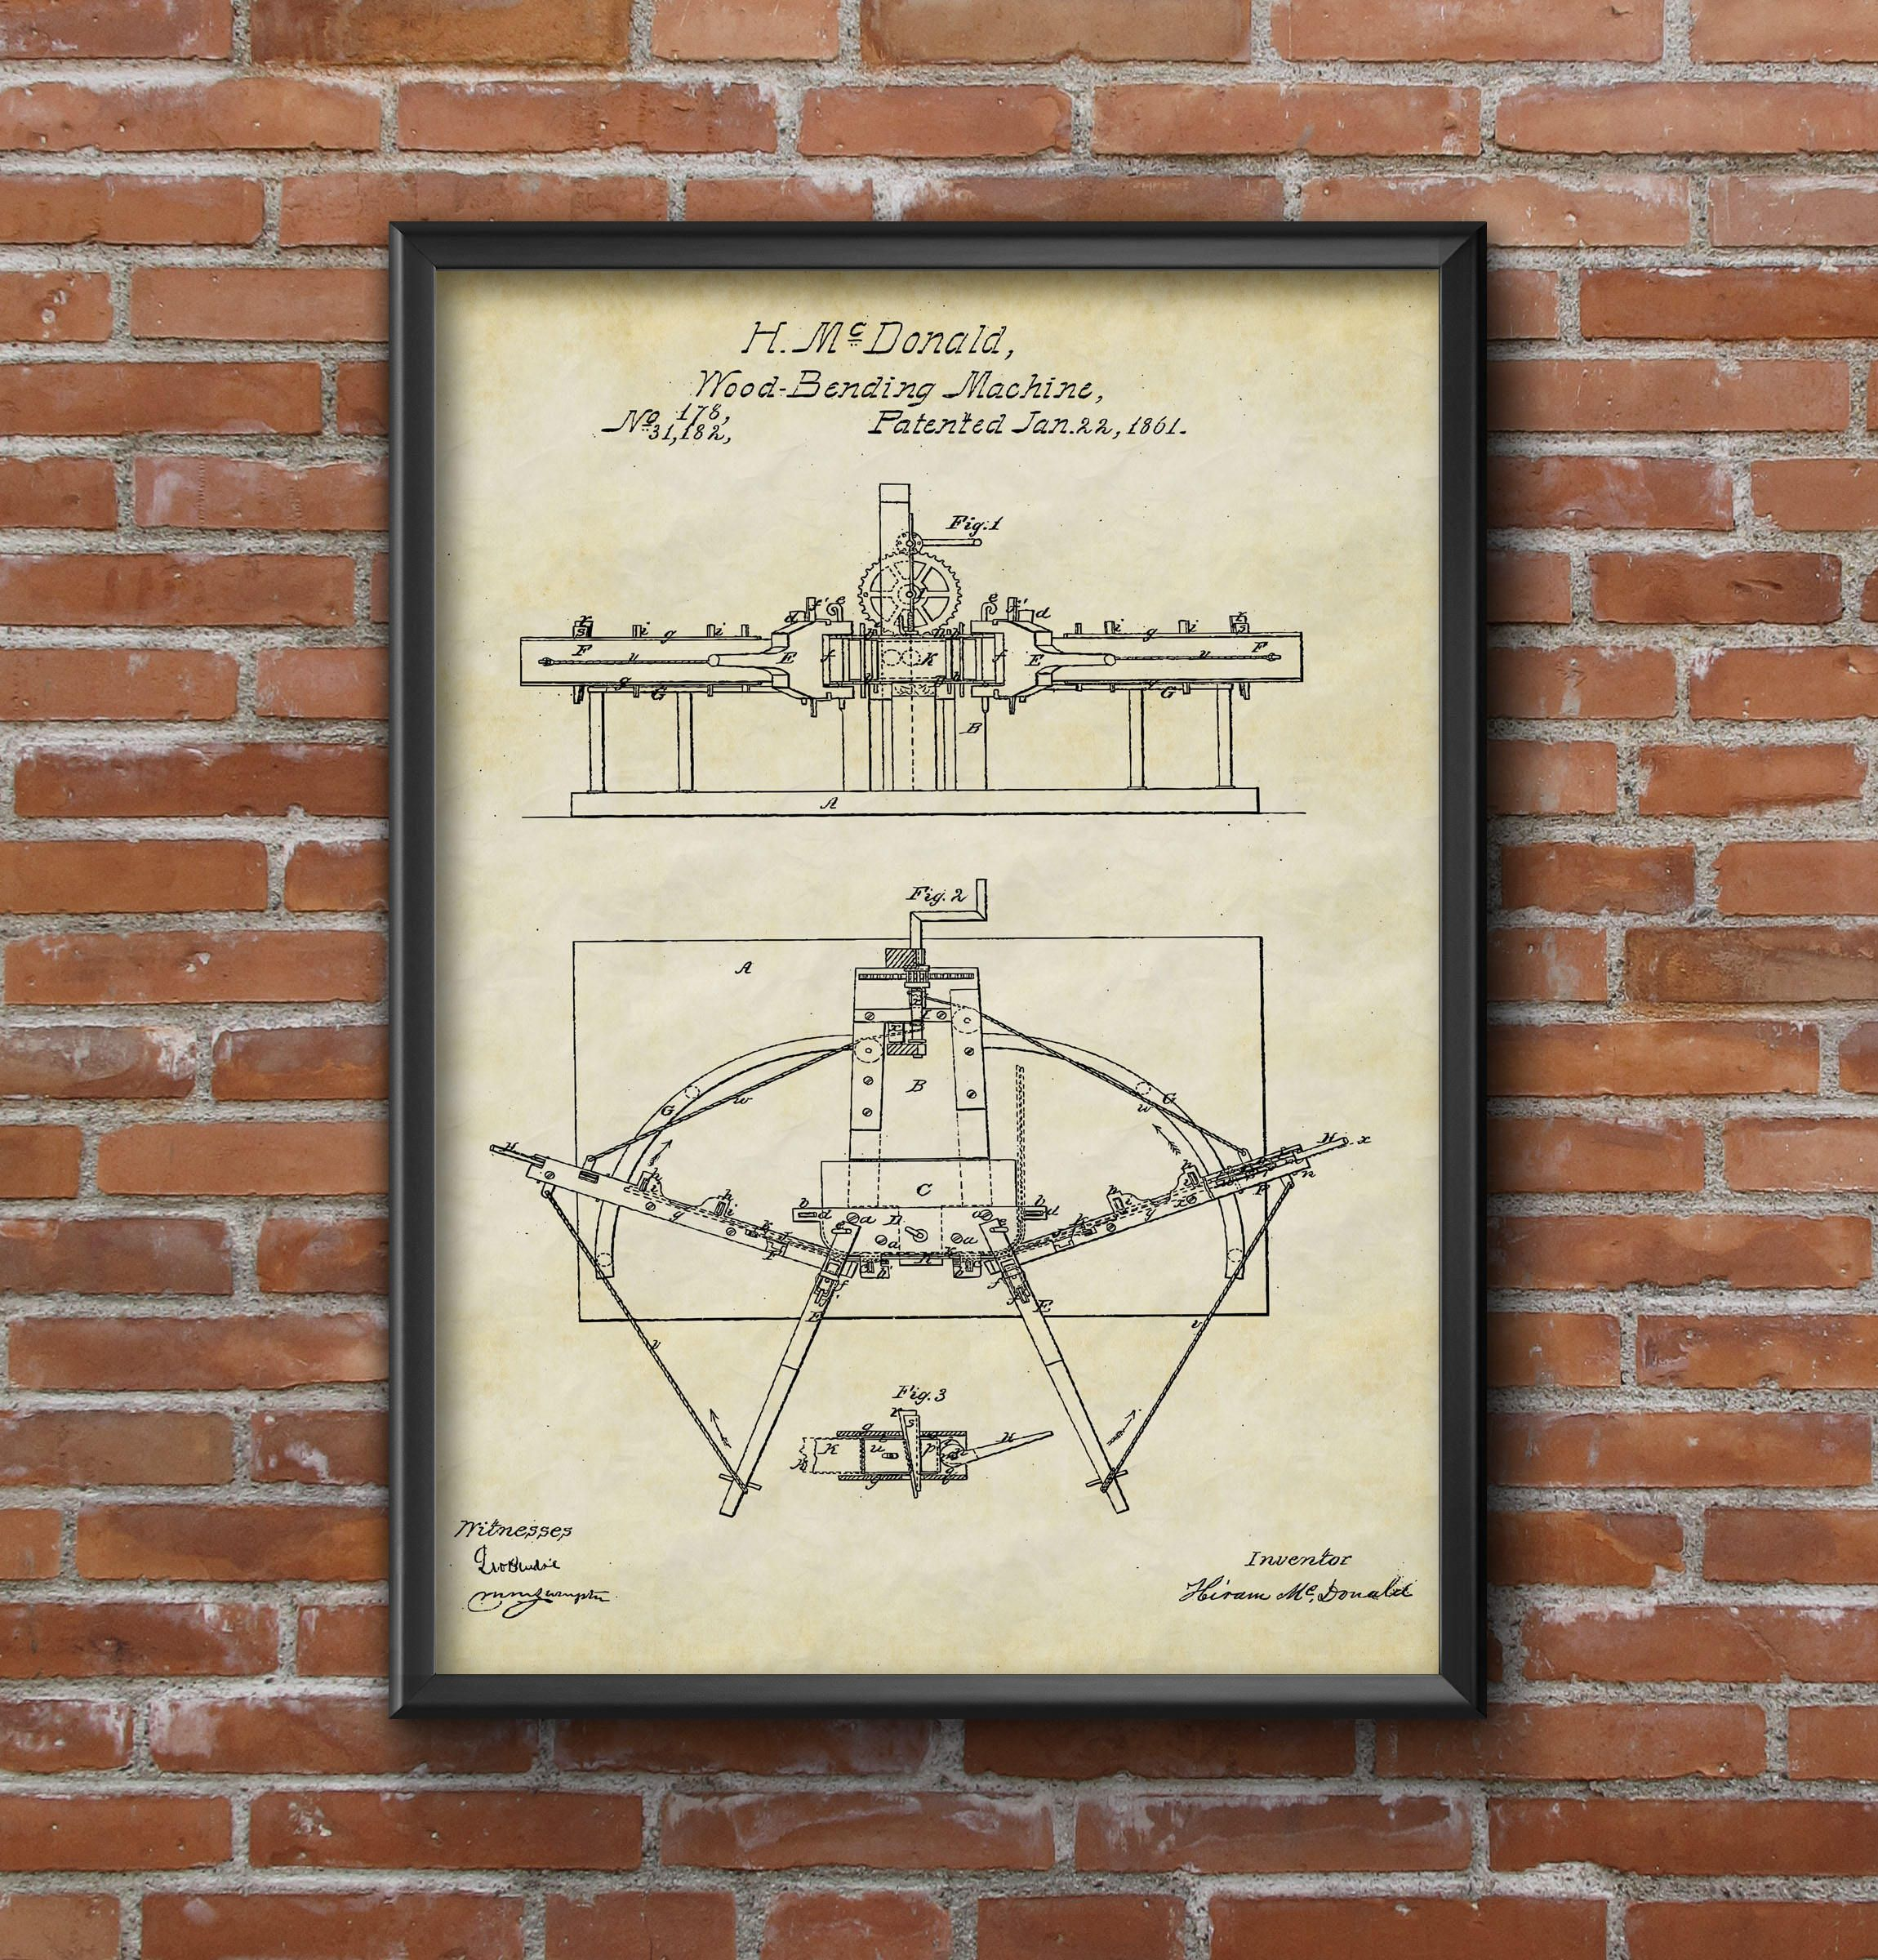 Wood bending machine patent patent prints patent poster wood bending machine patent patent prints patent poster woodworking patent patent poster wall art print home decor wall art blueprint art by malvernweather Gallery